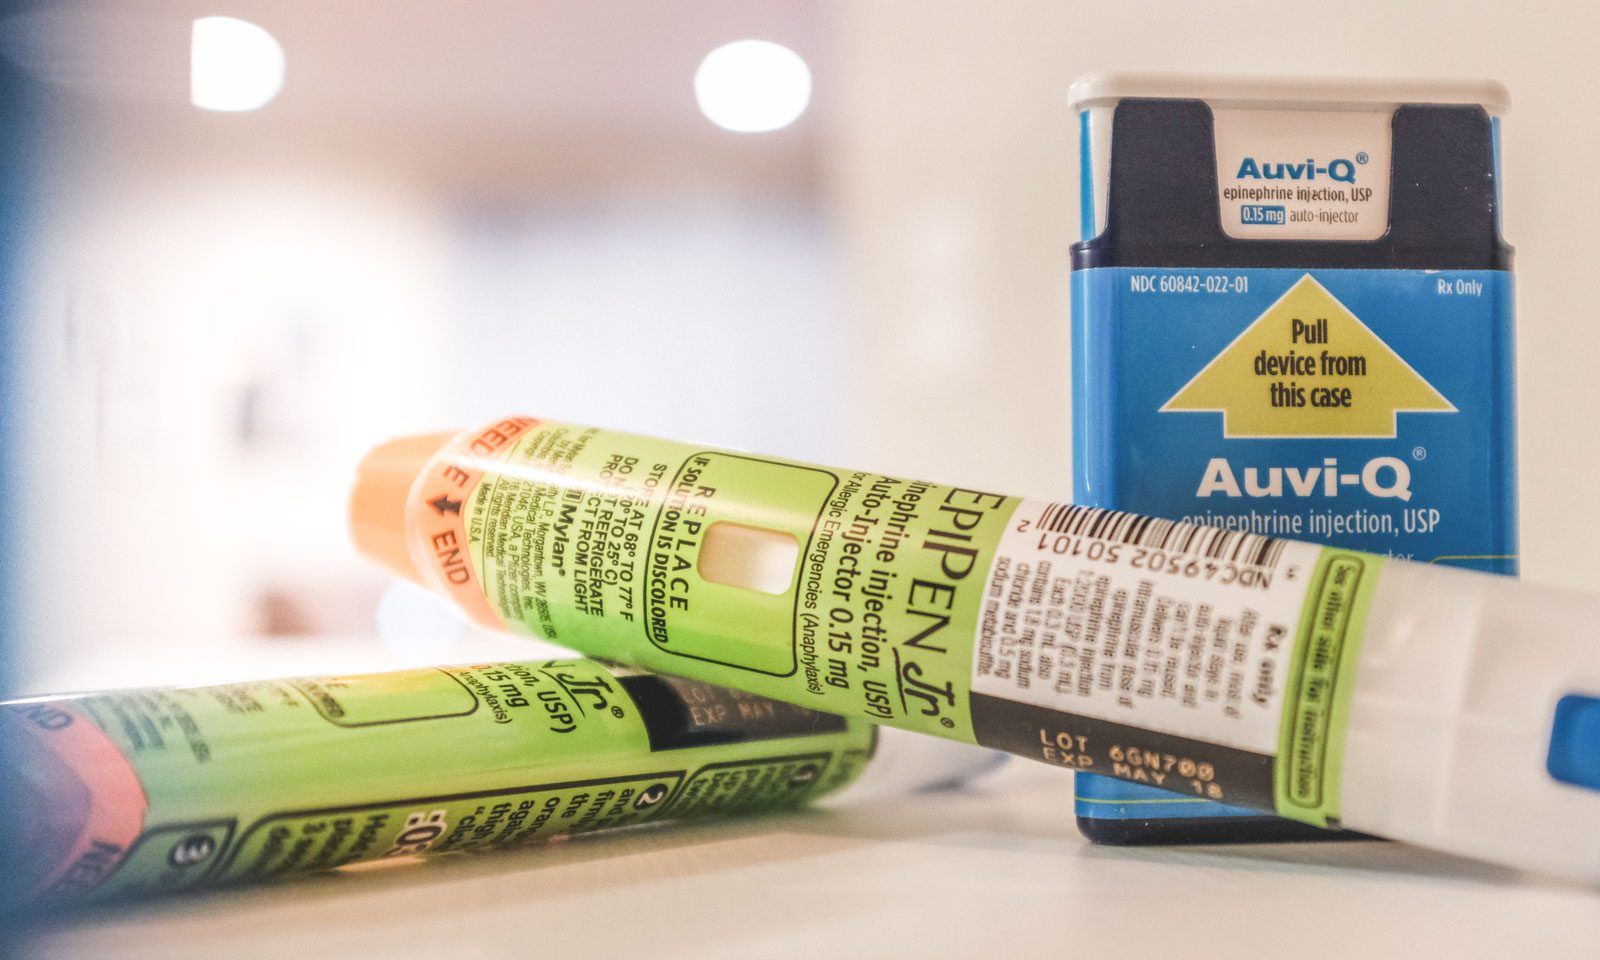 epipens are used to stop an anaphylaxis